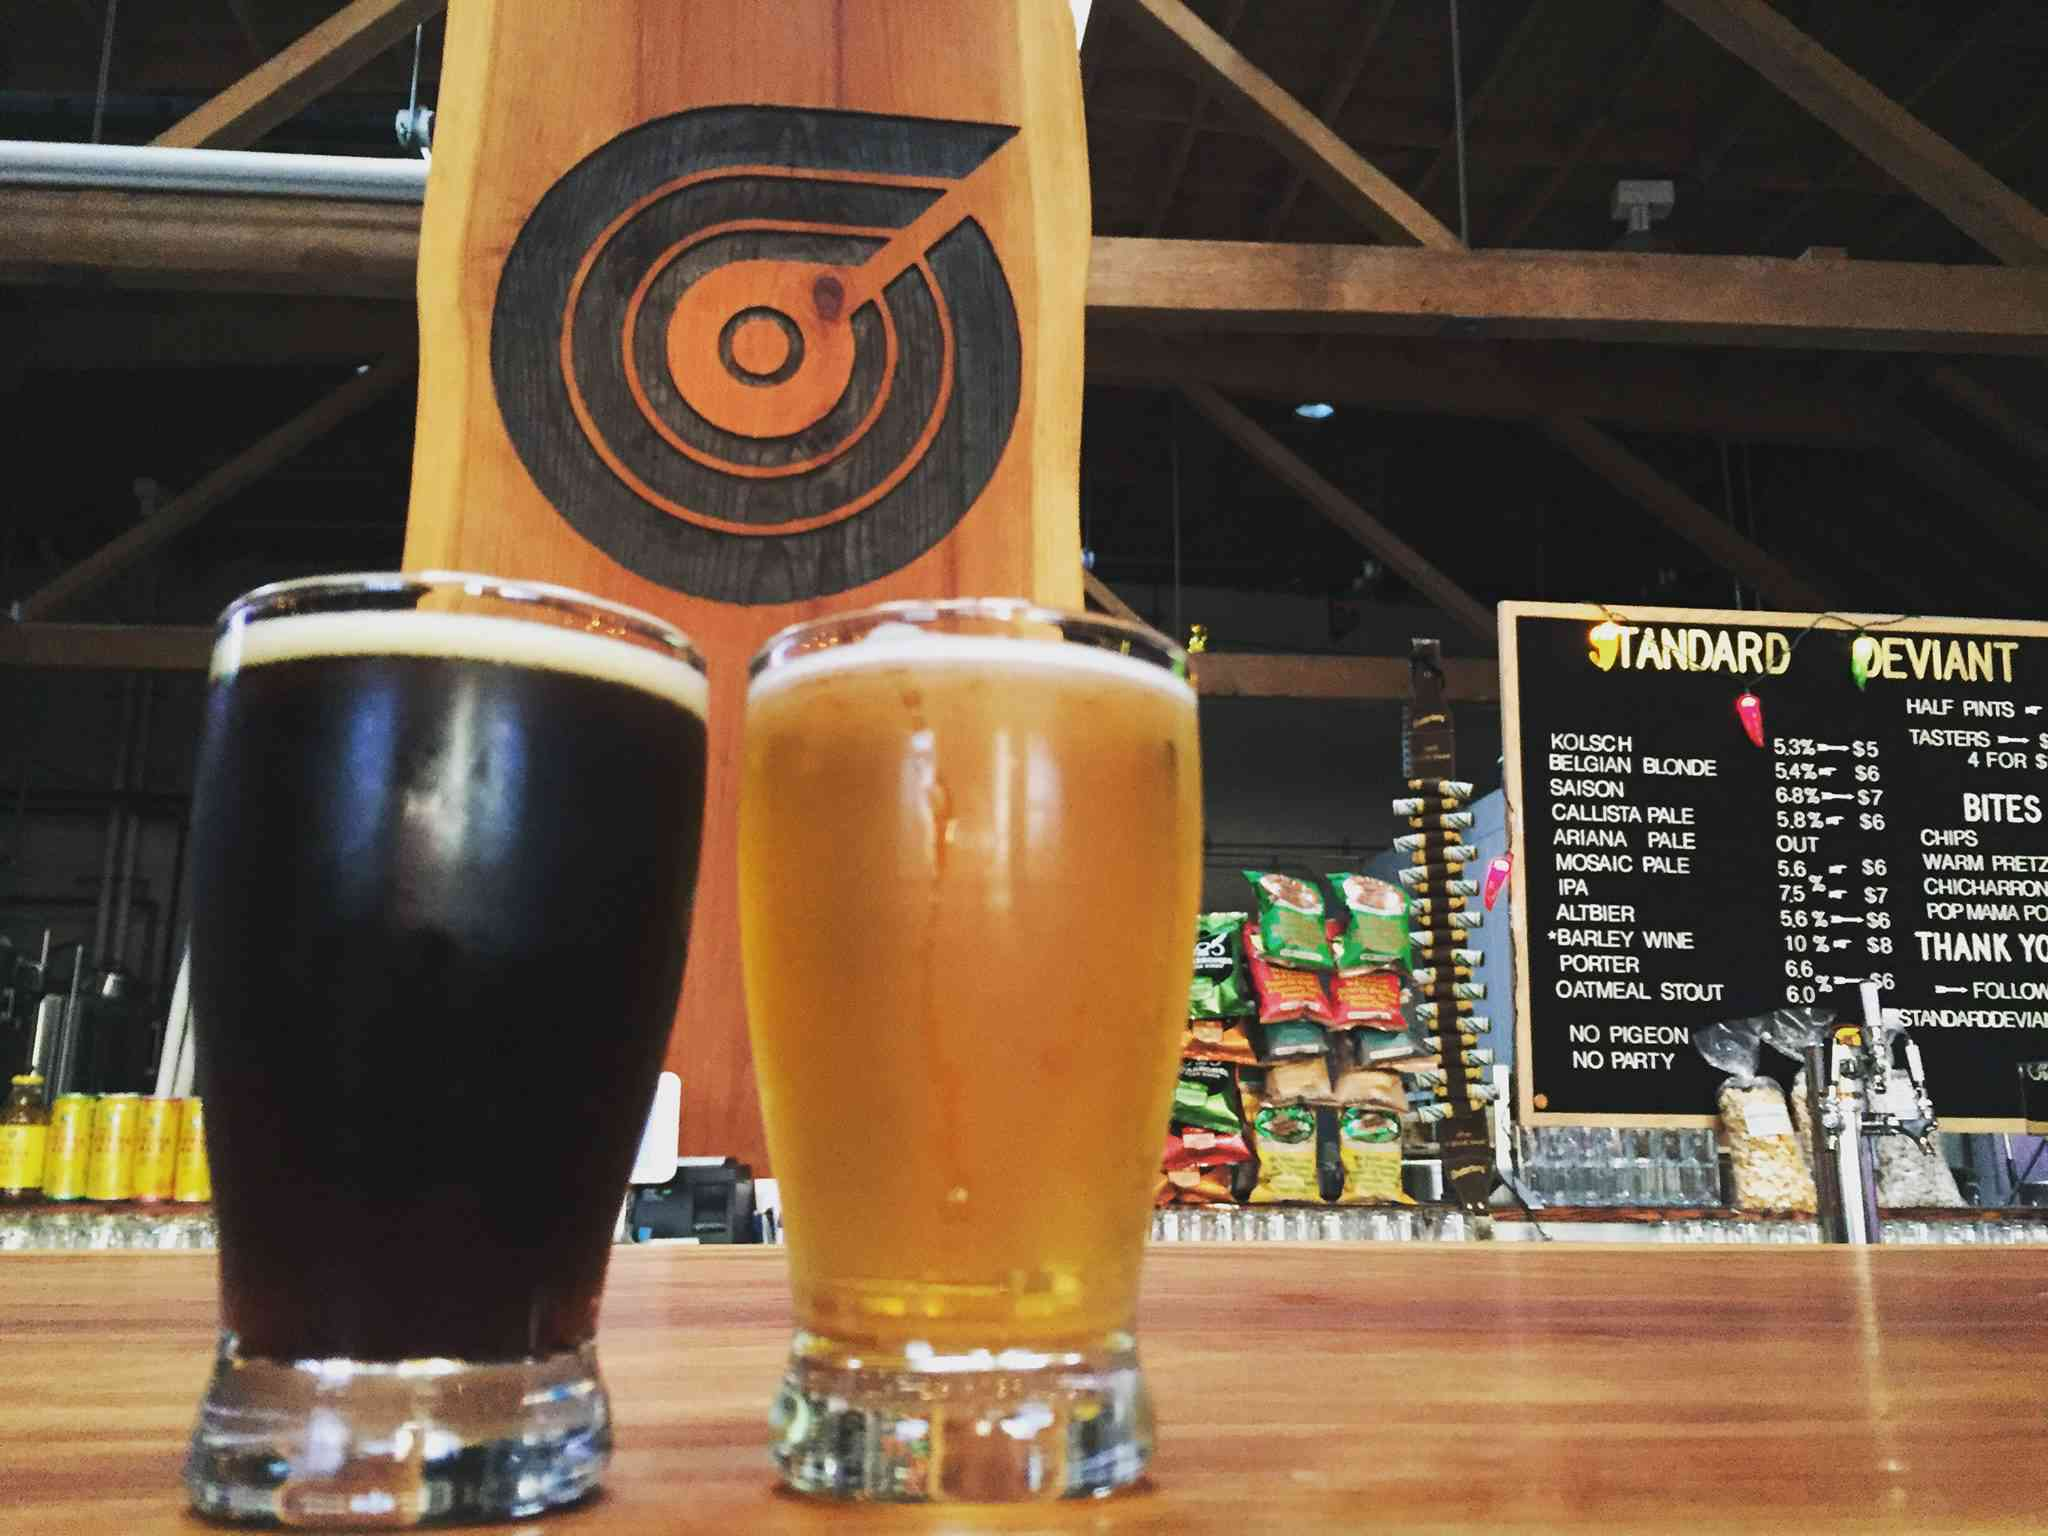 Two beers at Standard Deviant Brewing